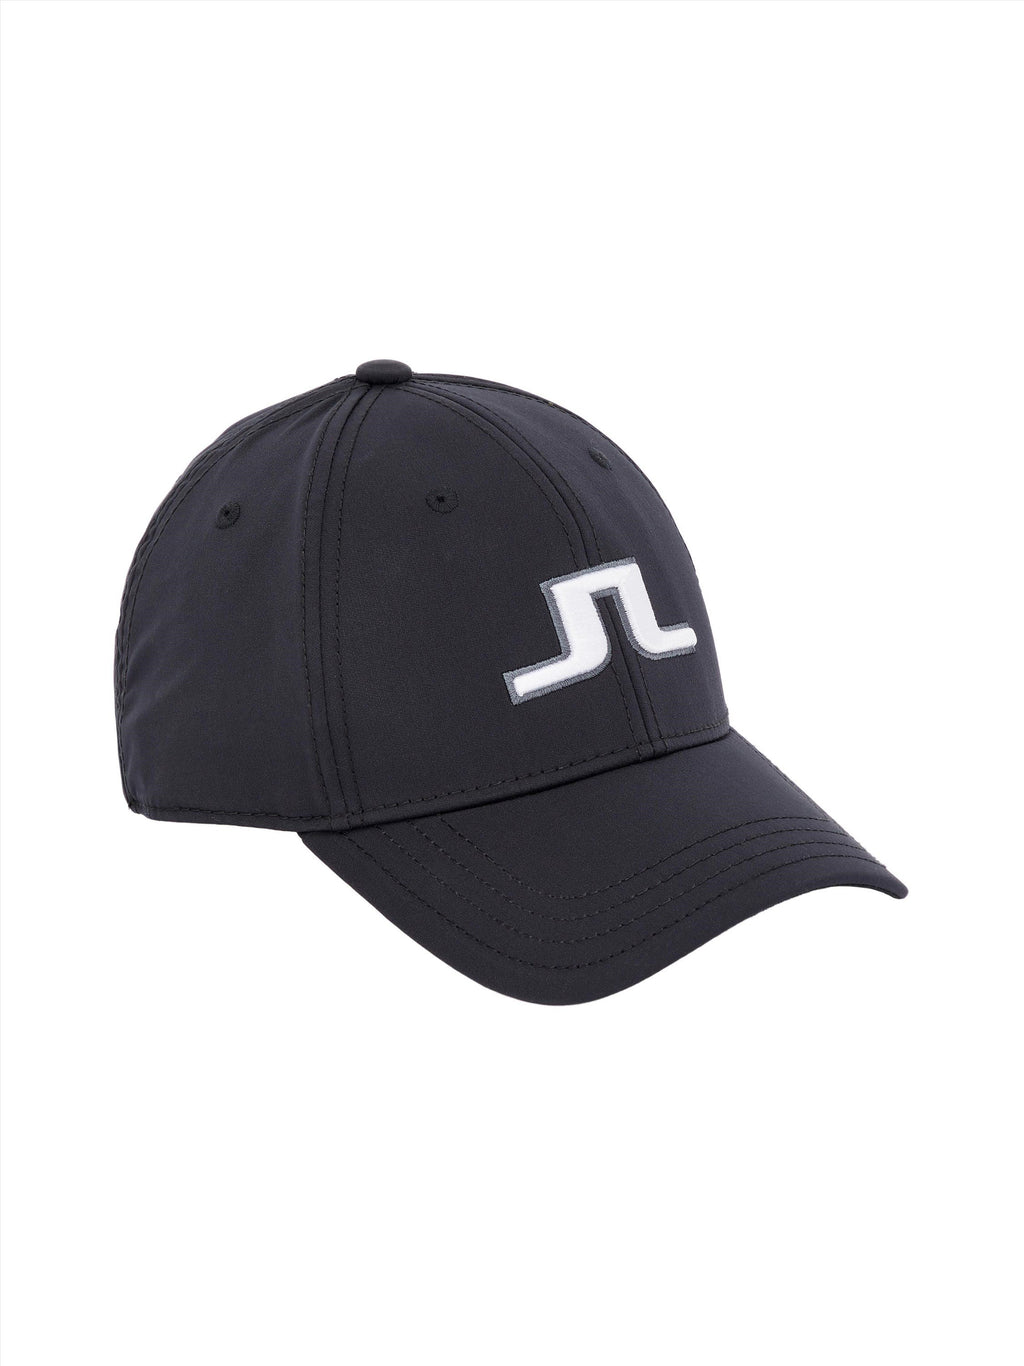 J LINDEBERG ANGUS TECH STRETCH GOLF HAT - Miami Golf